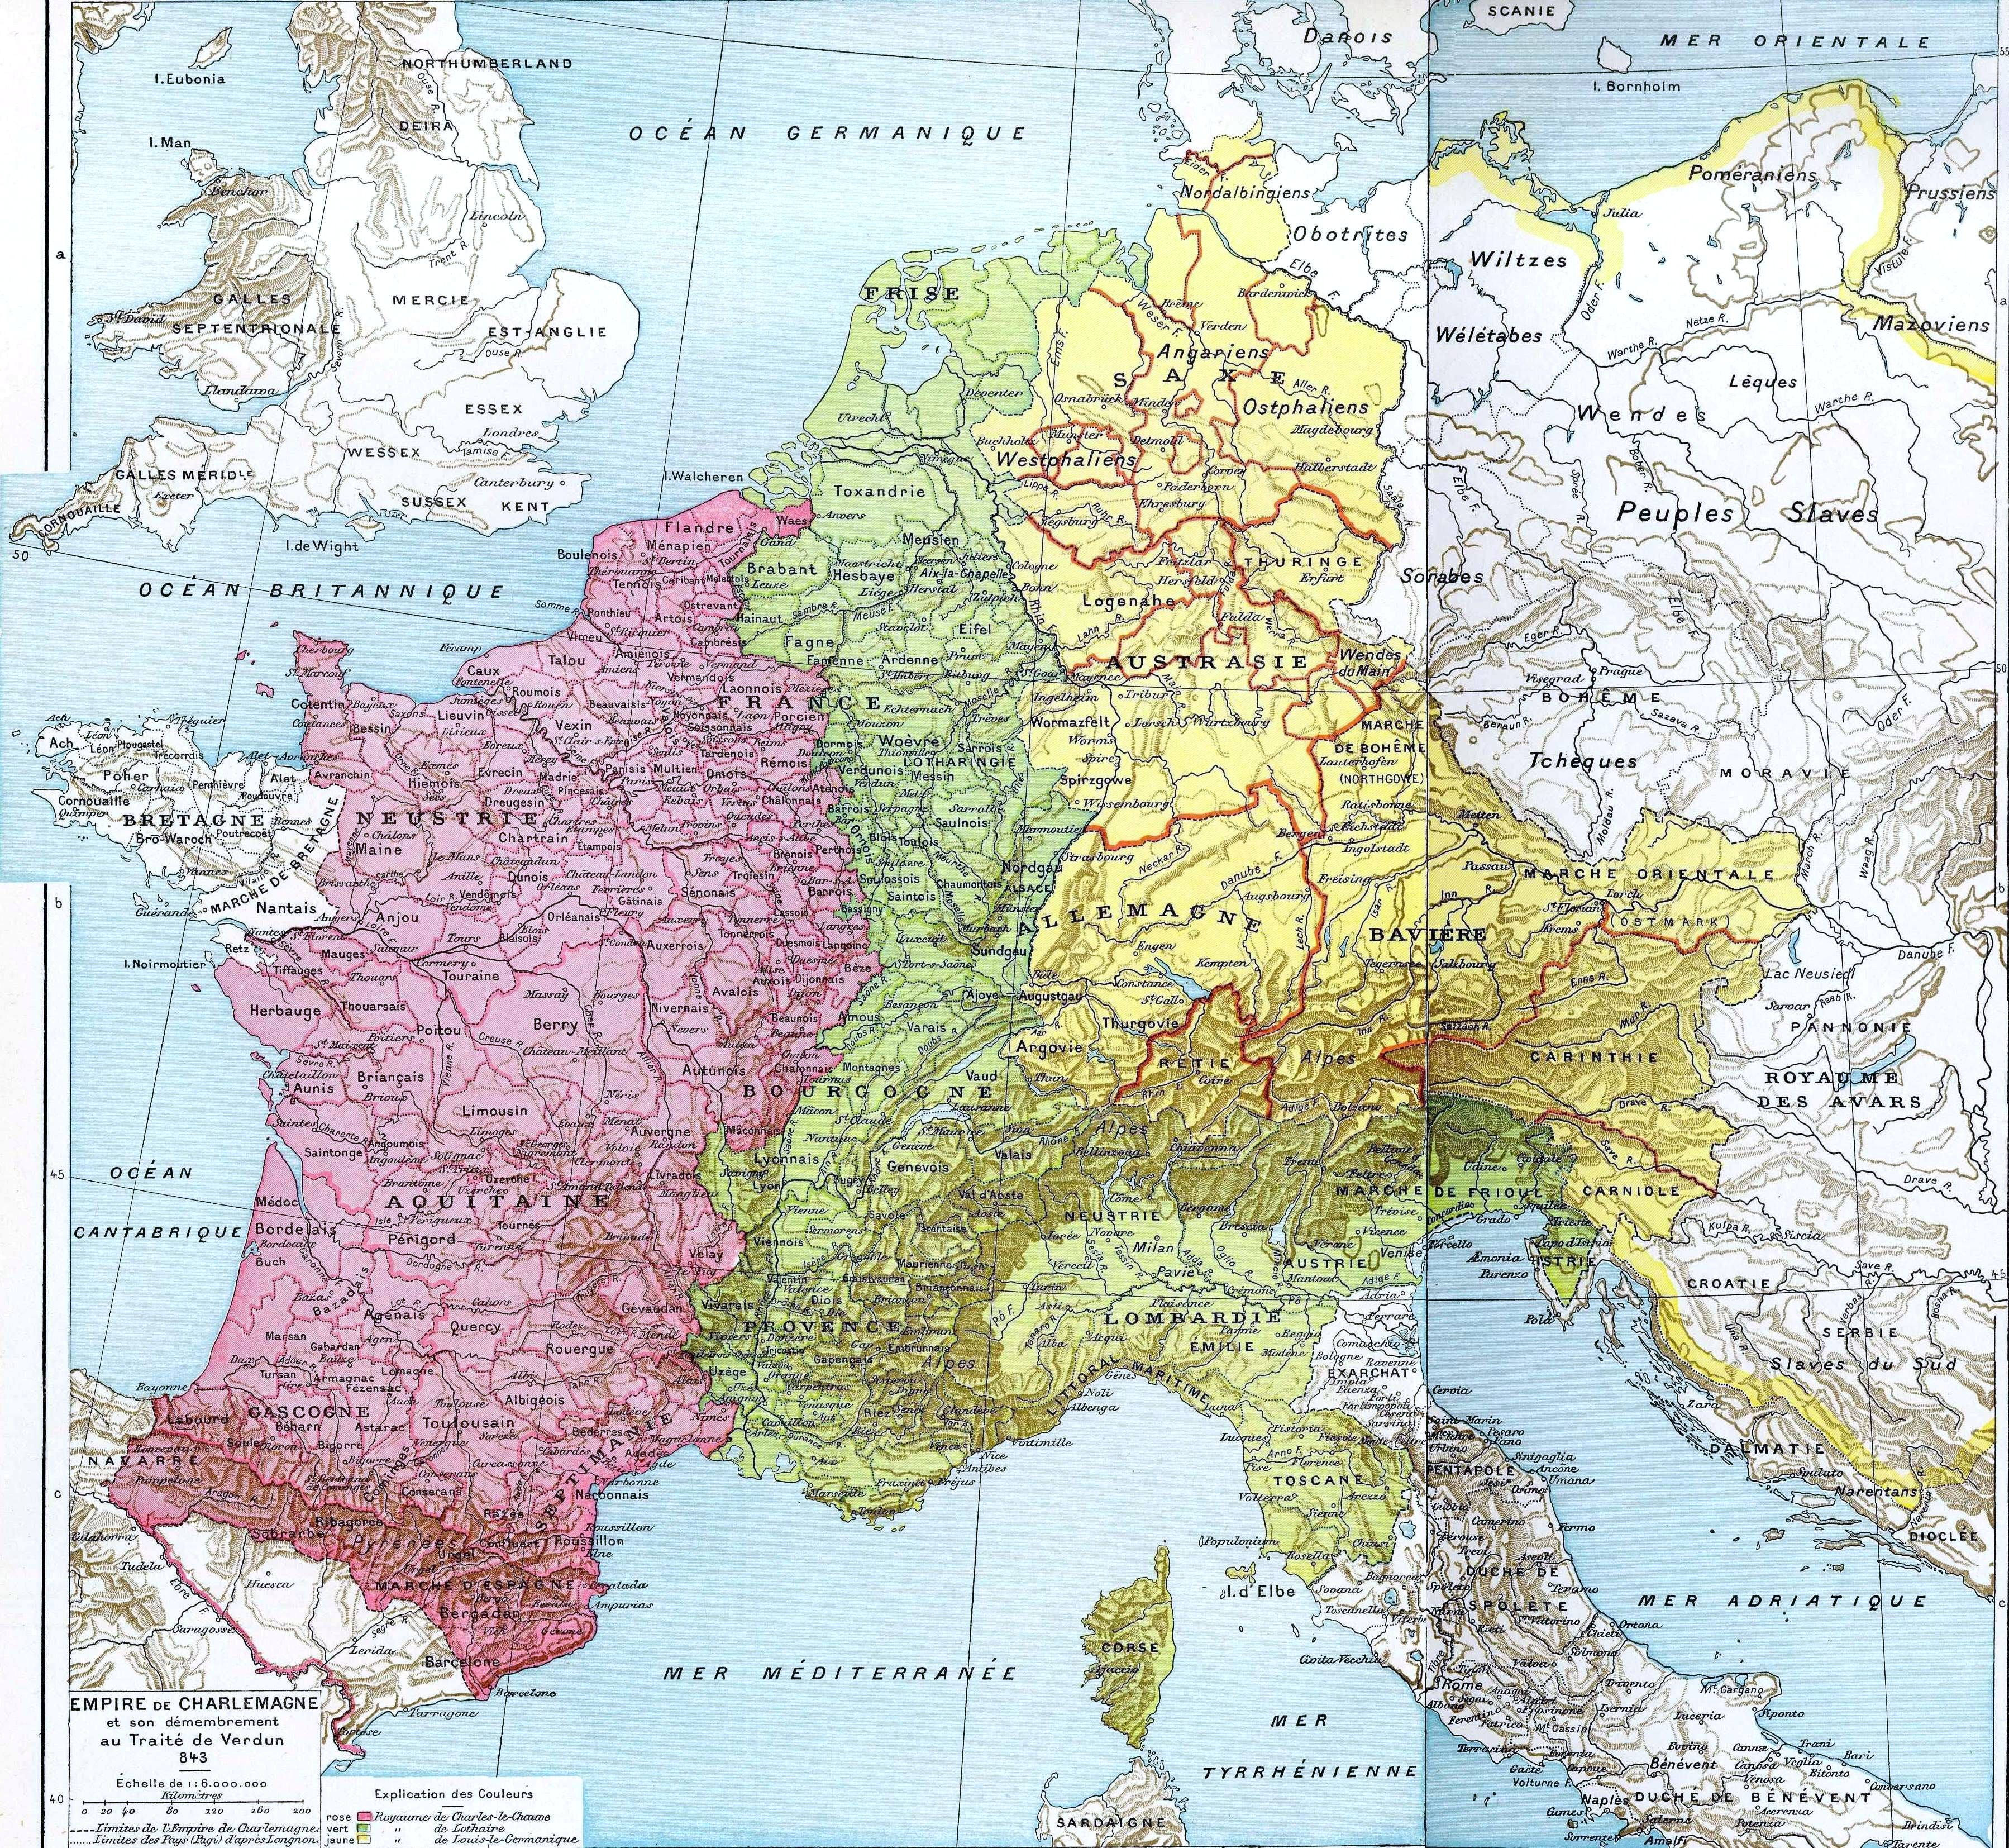 Beginning of the Carolingian dynasty. The formation of the Frankish state 45